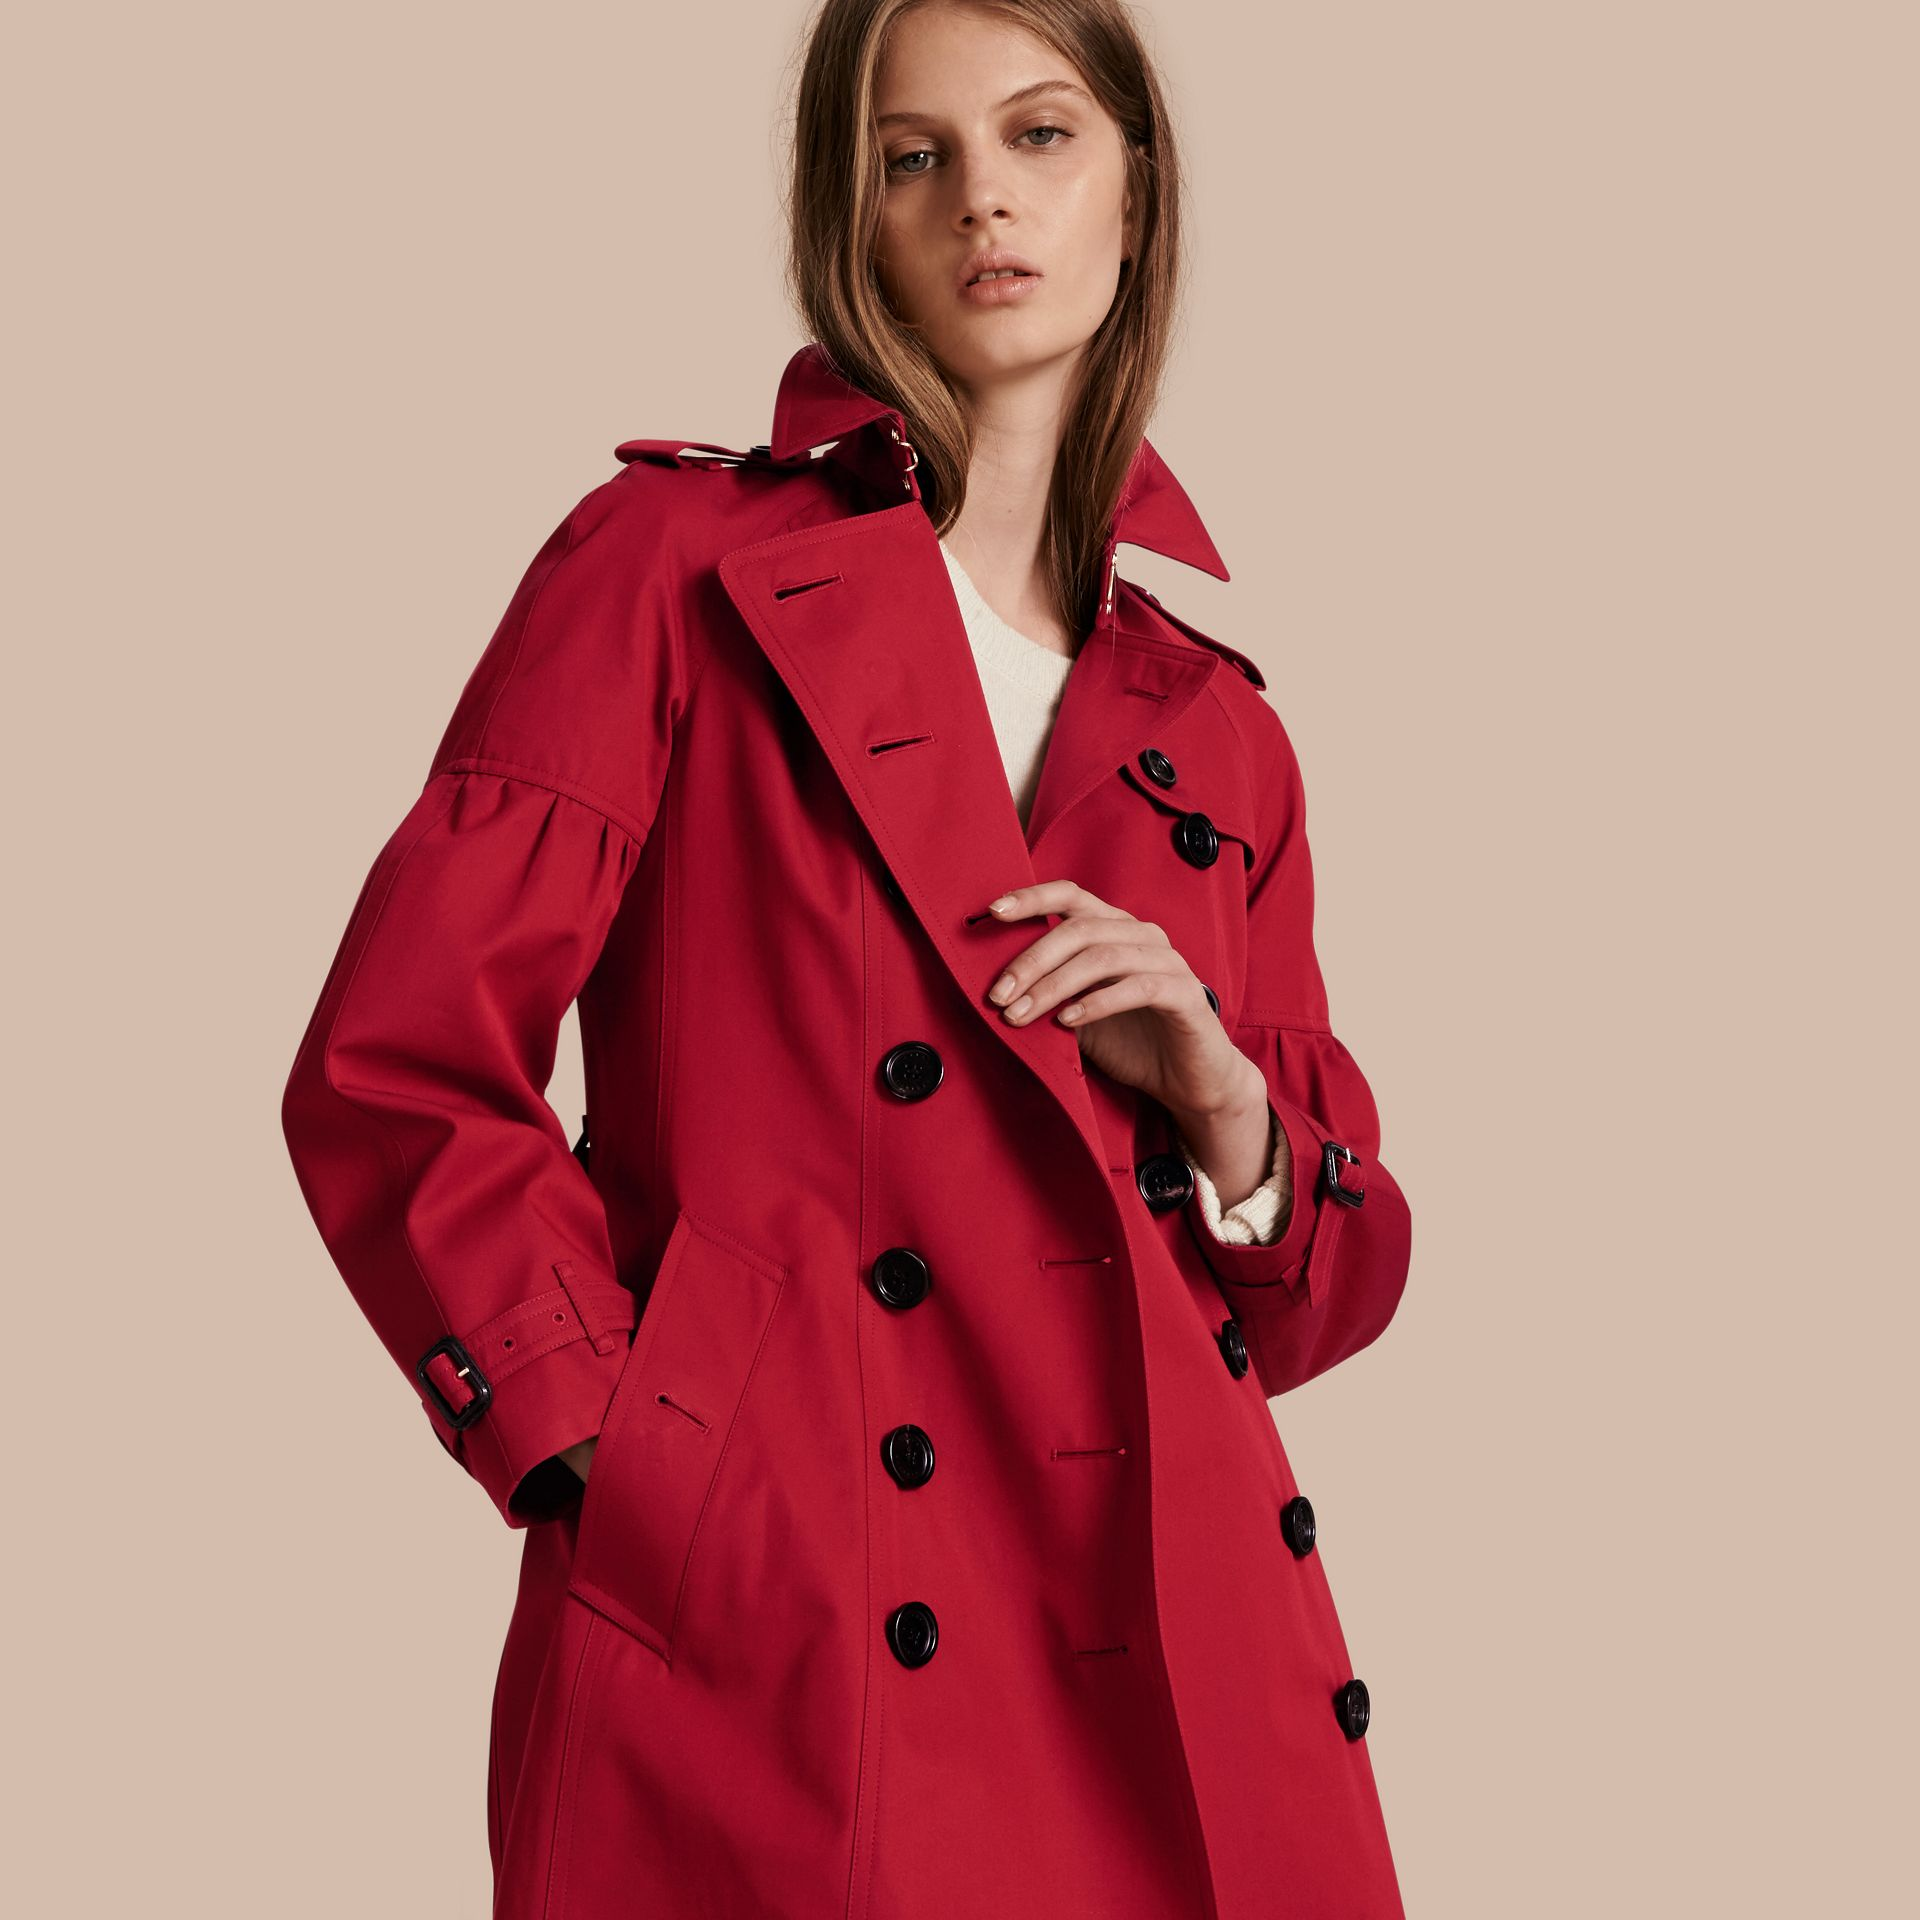 Rouge parade Trench-coat en gabardine de coton avec manches bouffantes Rouge Parade - photo de la galerie 1